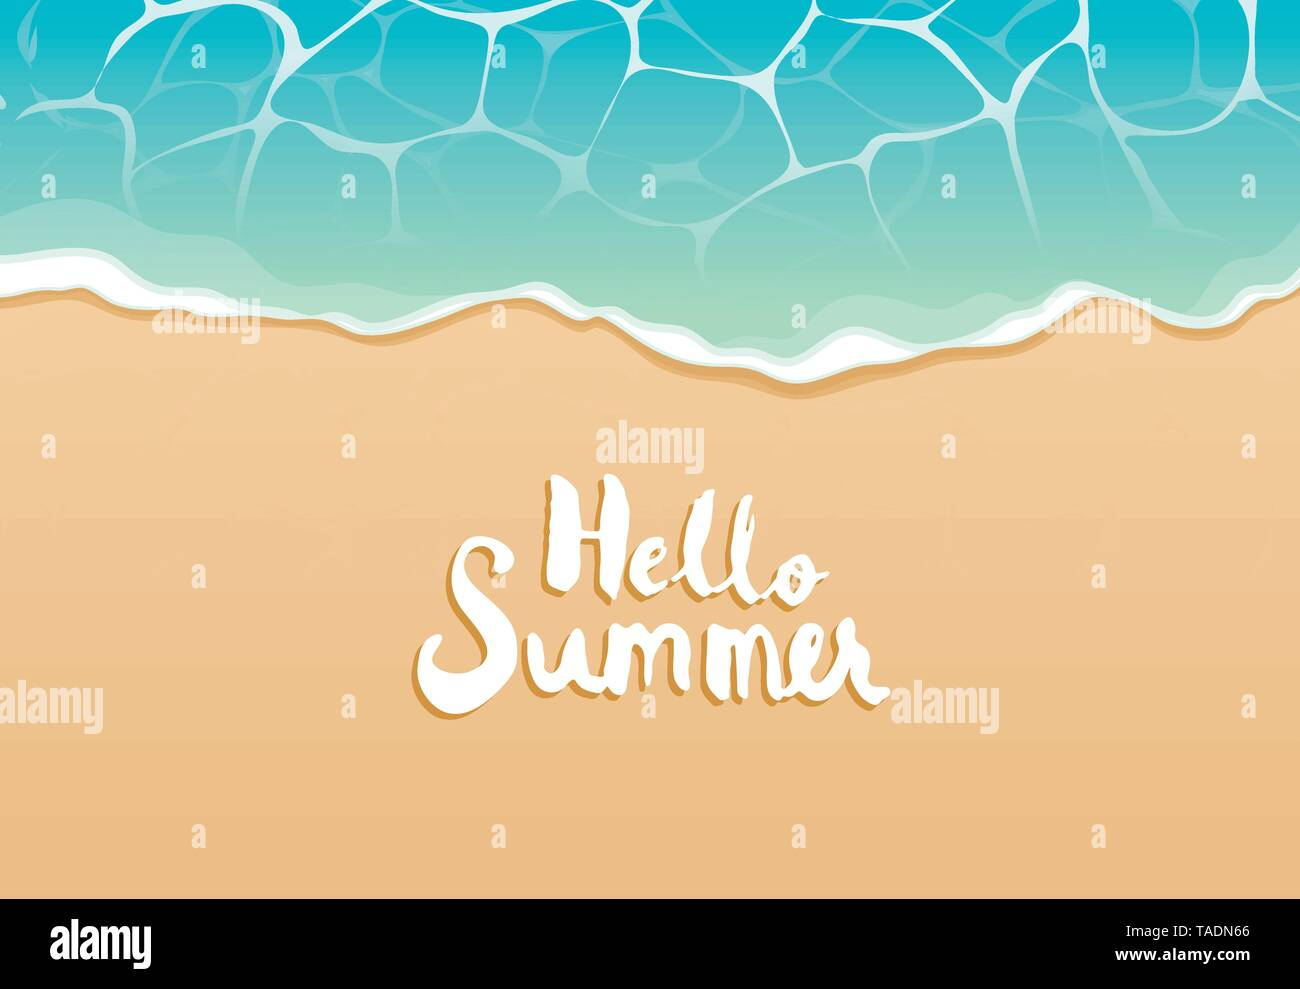 Hello summer beach top view travel and vacation background. Use for banner template, greeting card, invitation, sea and sand poster. - Stock Image